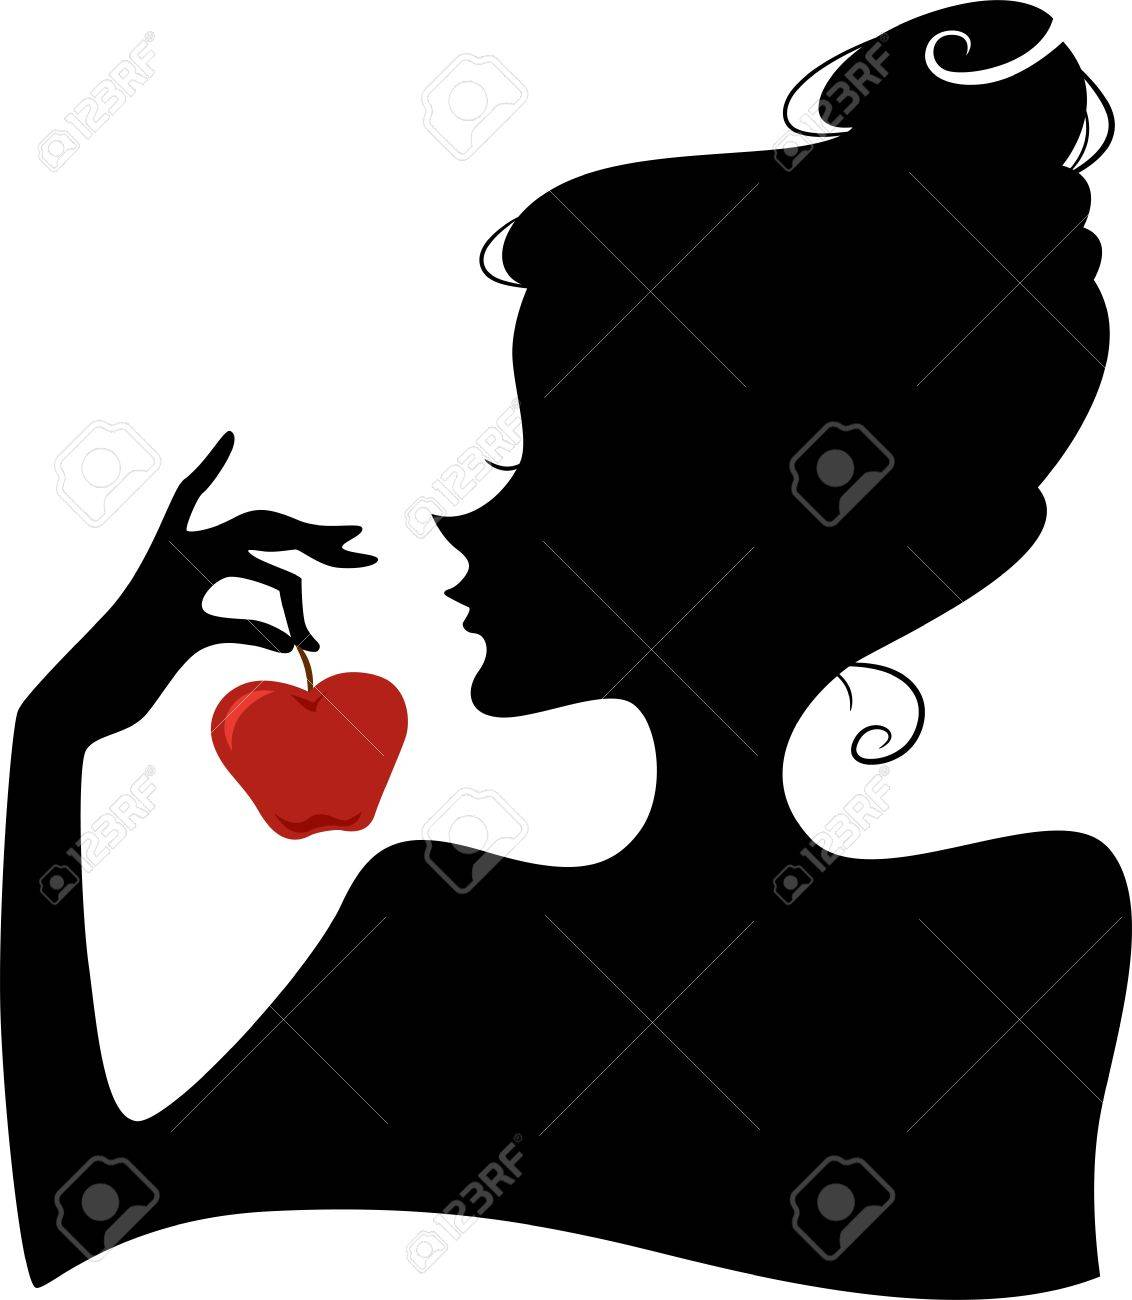 Illustration Featuring the Silhouette of a Woman Holding a Red Apple Stock Photo - 17581303